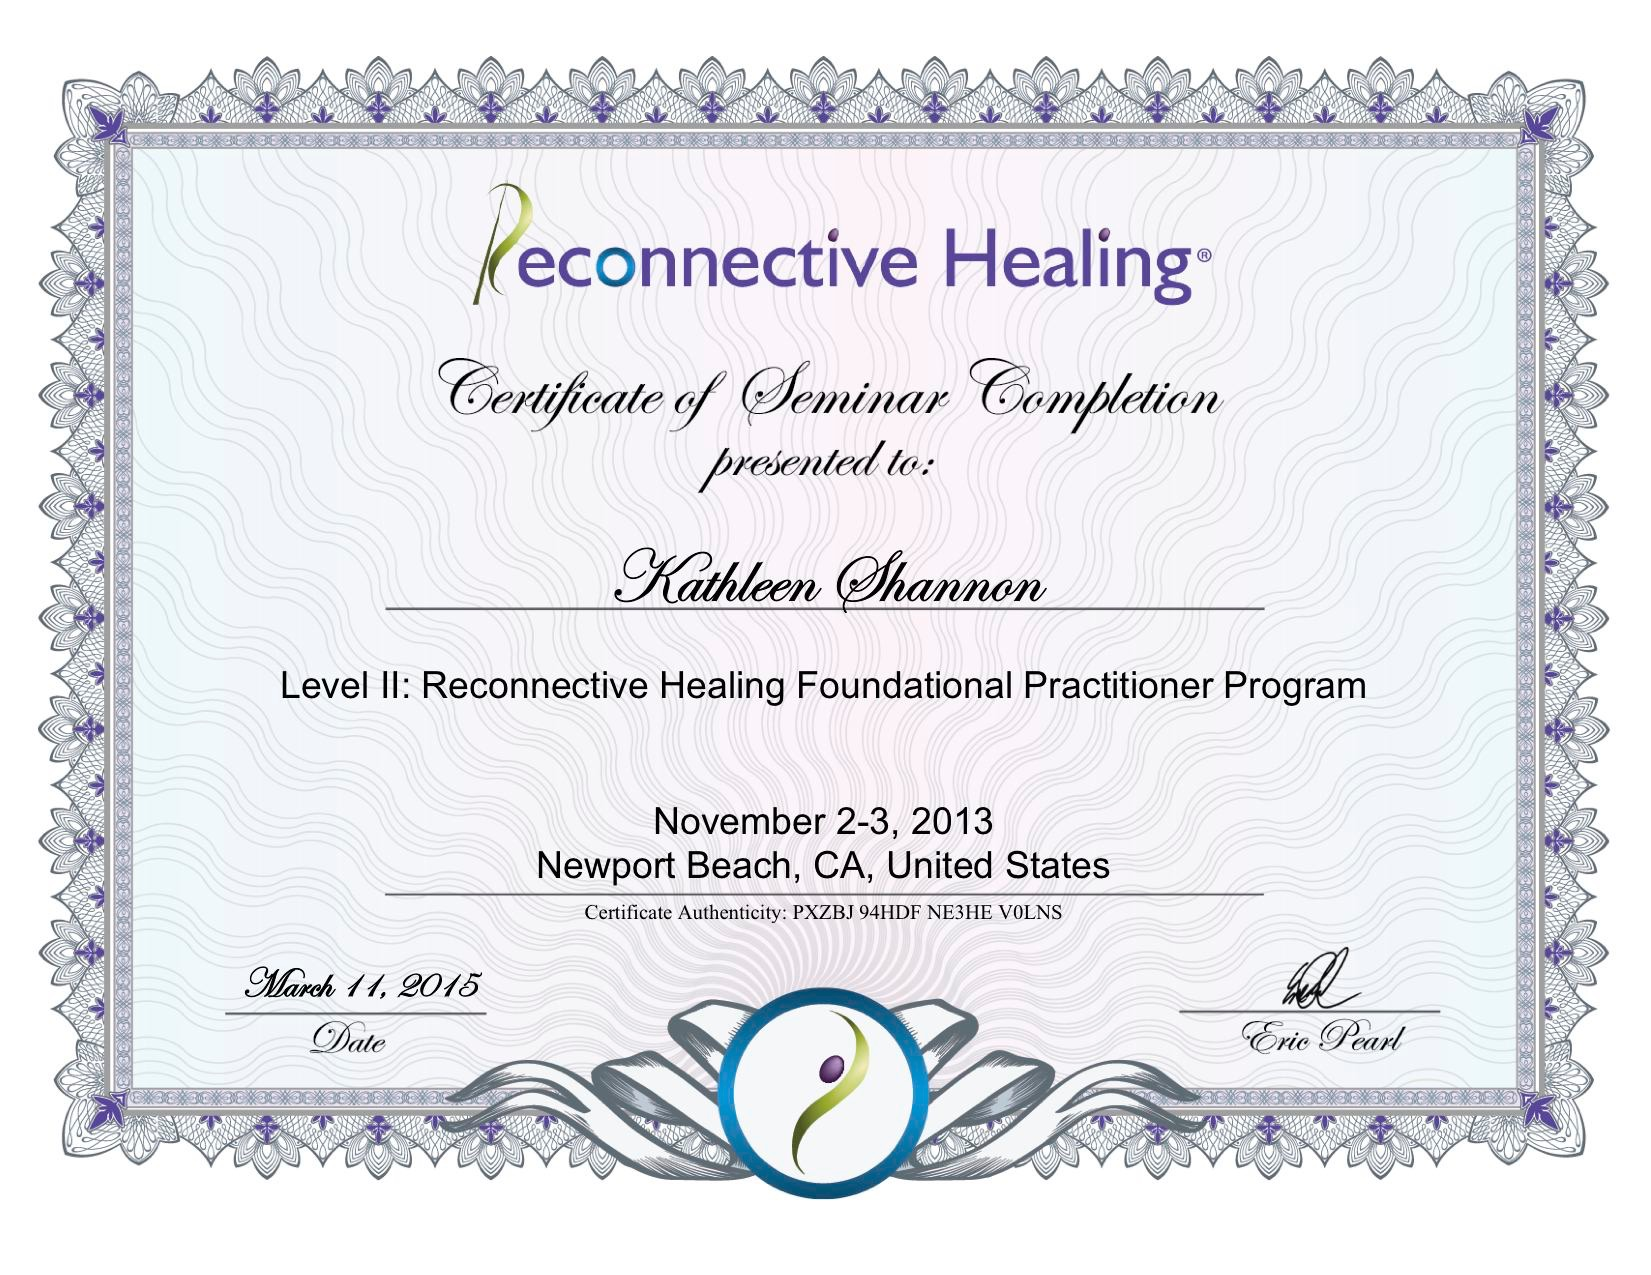 Reconnective Healing Certificate